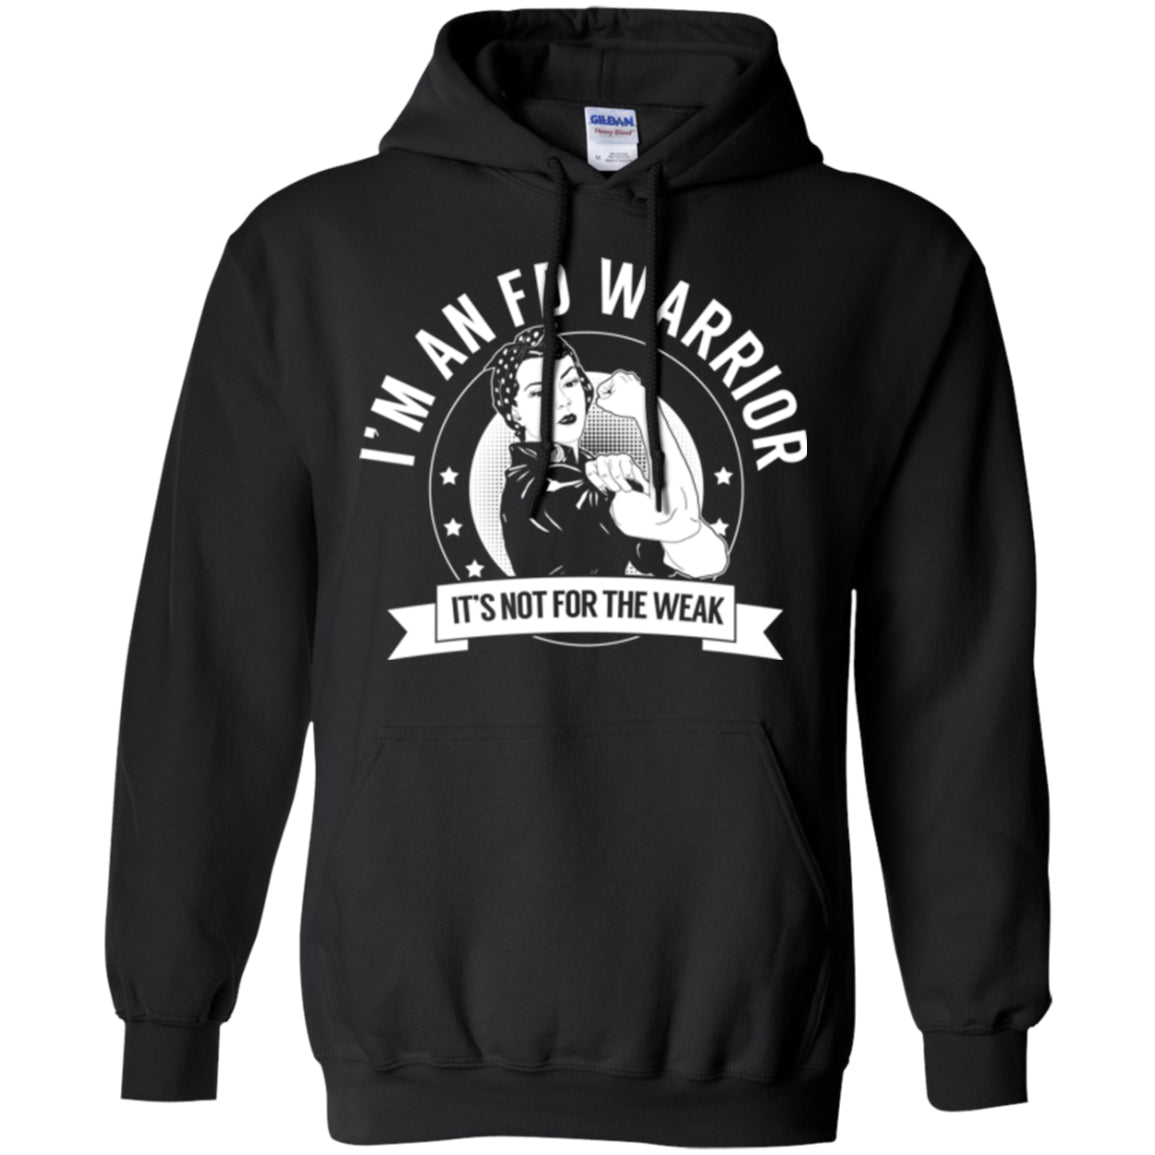 Fibrous Dysplasia - FD Warrior Not For The Weak Pullover Hoodie 8 oz. - The Unchargeables